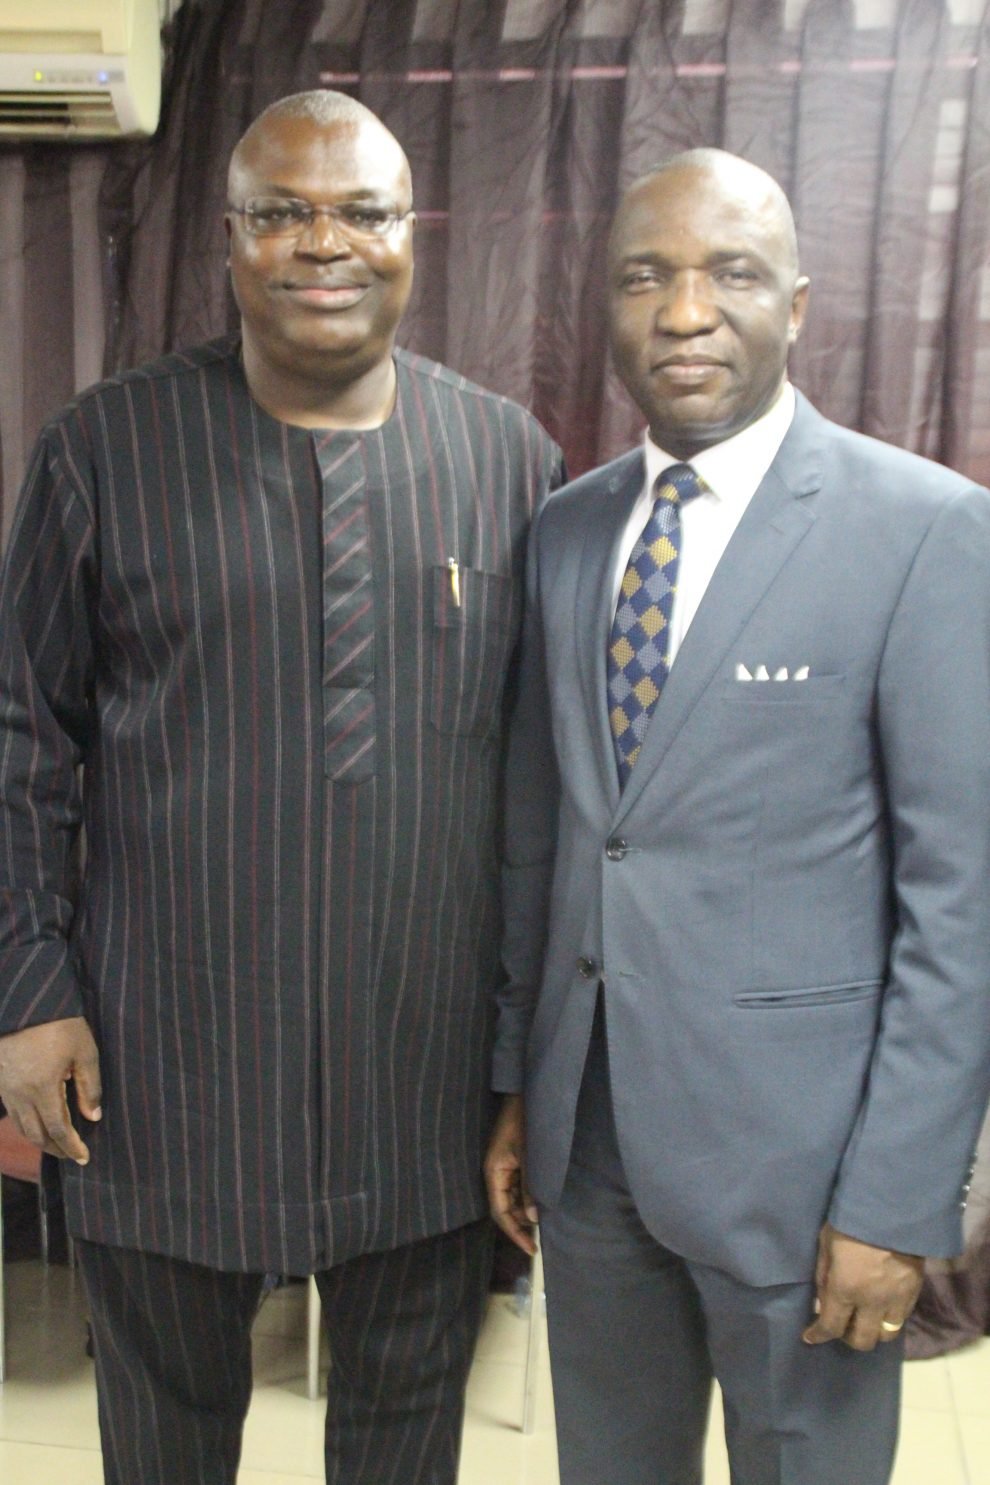 L-R: Executive Director, Inlaks, Femi Muraino representing CEO of Inlaks, Femi Adeoti when NTA Channel 10 honoured Adeoti with the Exemplary Leadership in Business Award in Lagos and another award recipient, MD/CEO, Primero Transport Services, owner and operator of the Bus Rapid Transit, Fola Tinubu recently